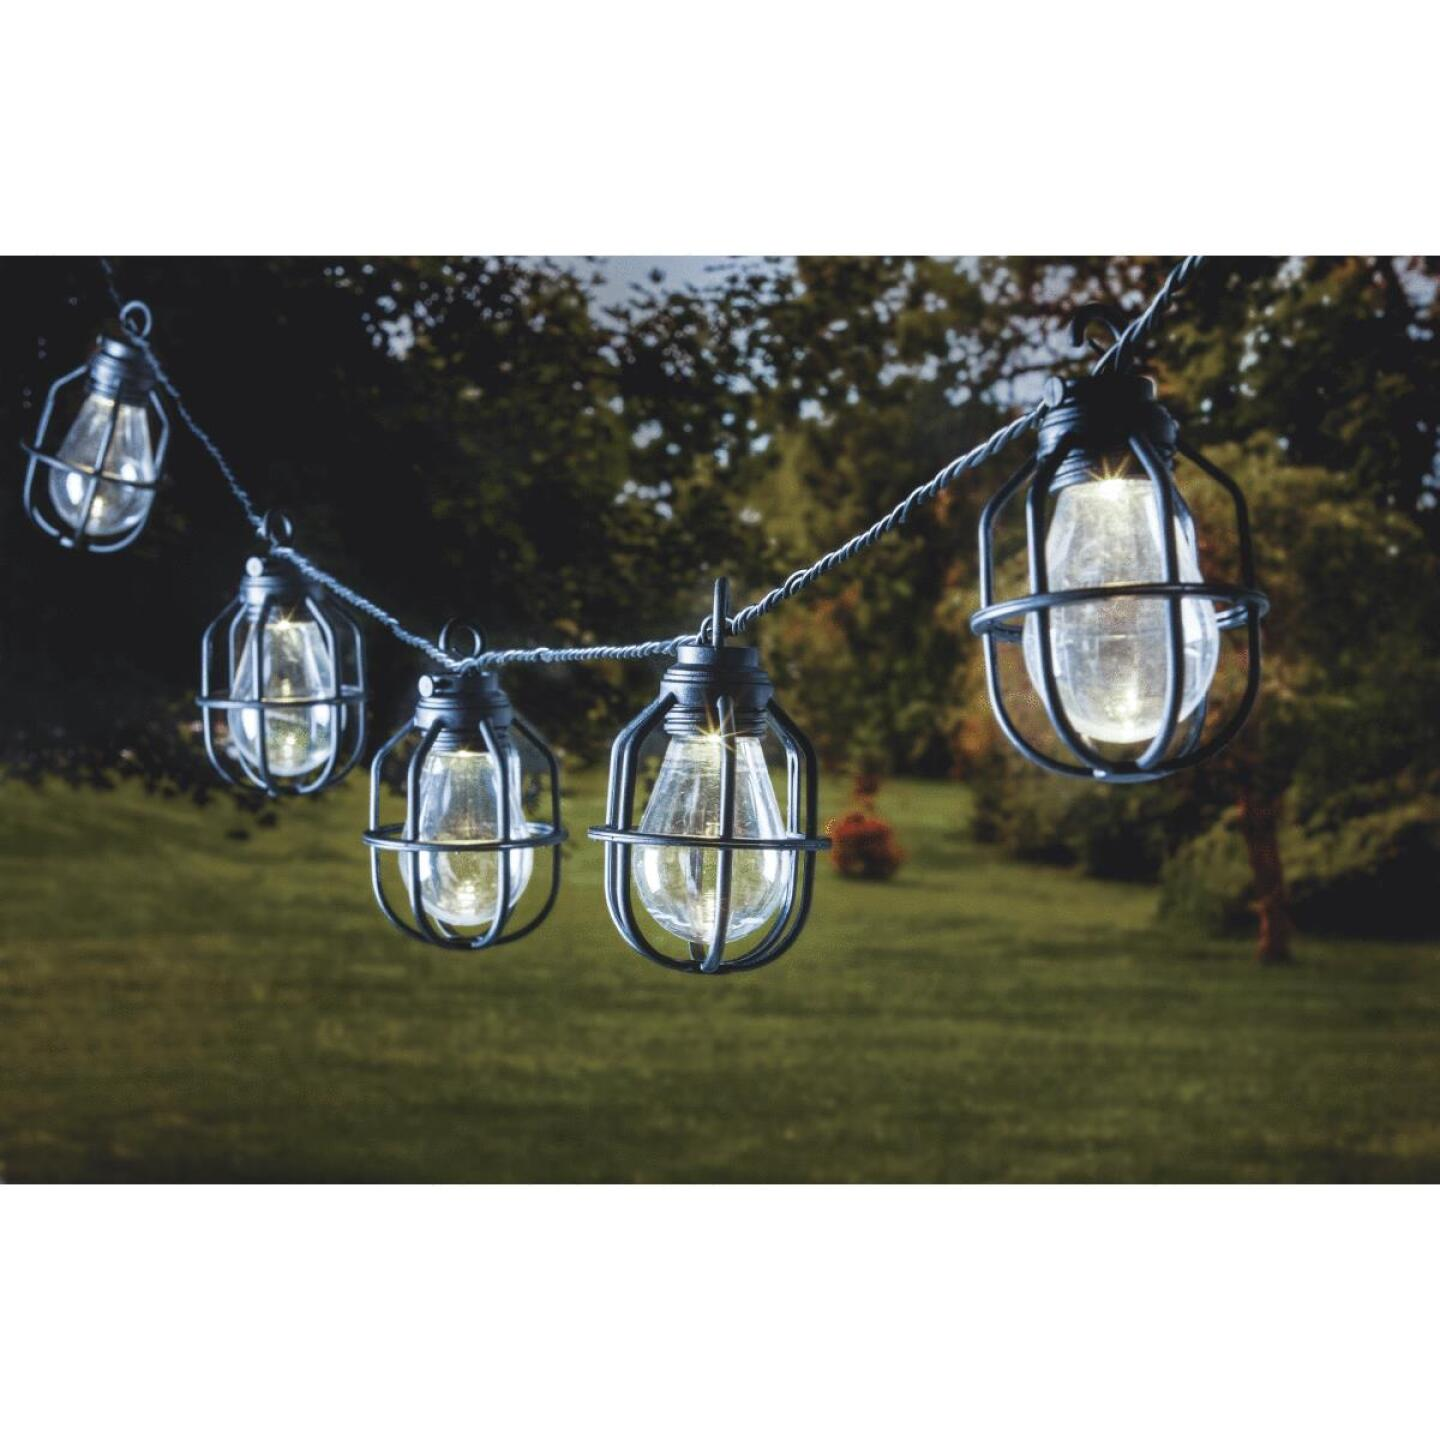 Paradise 10.5 Ft. 10-Light Warm White Black Lantern String Lights Image 3